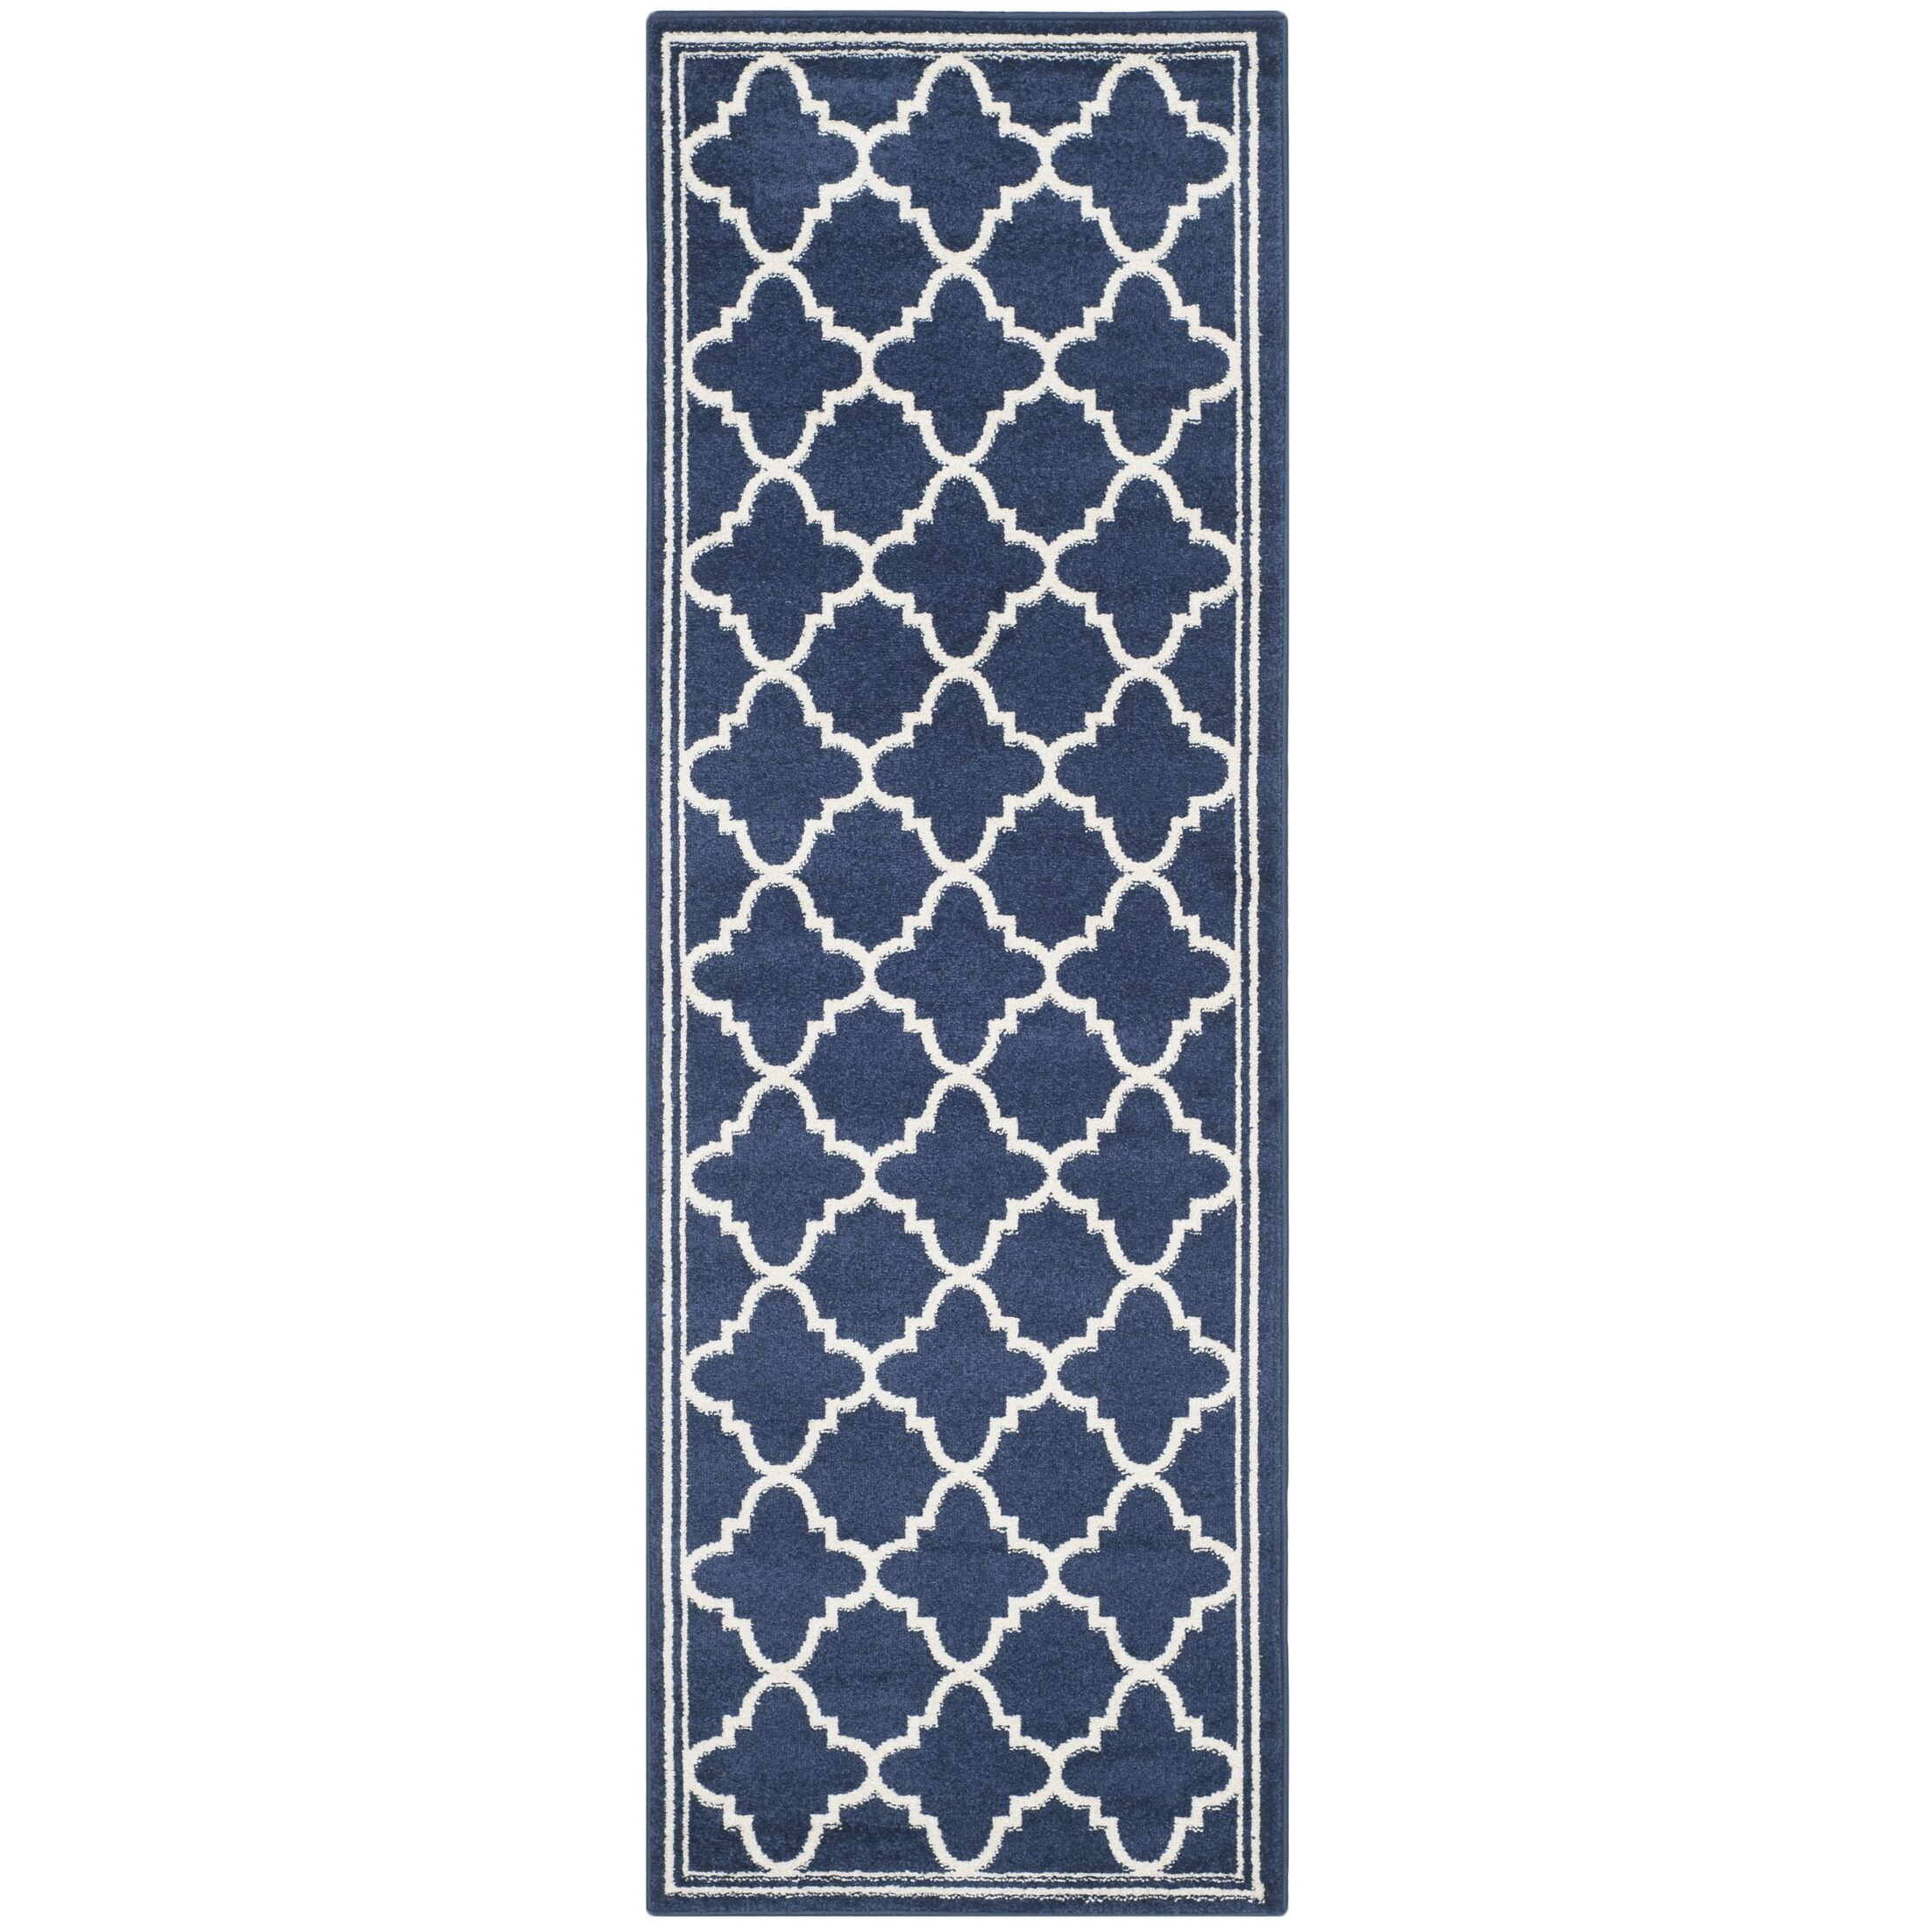 Stodola Geometric Navy/Beige Indoor/Outdoor Woven Area Rug Rug Size: Runner 2'3